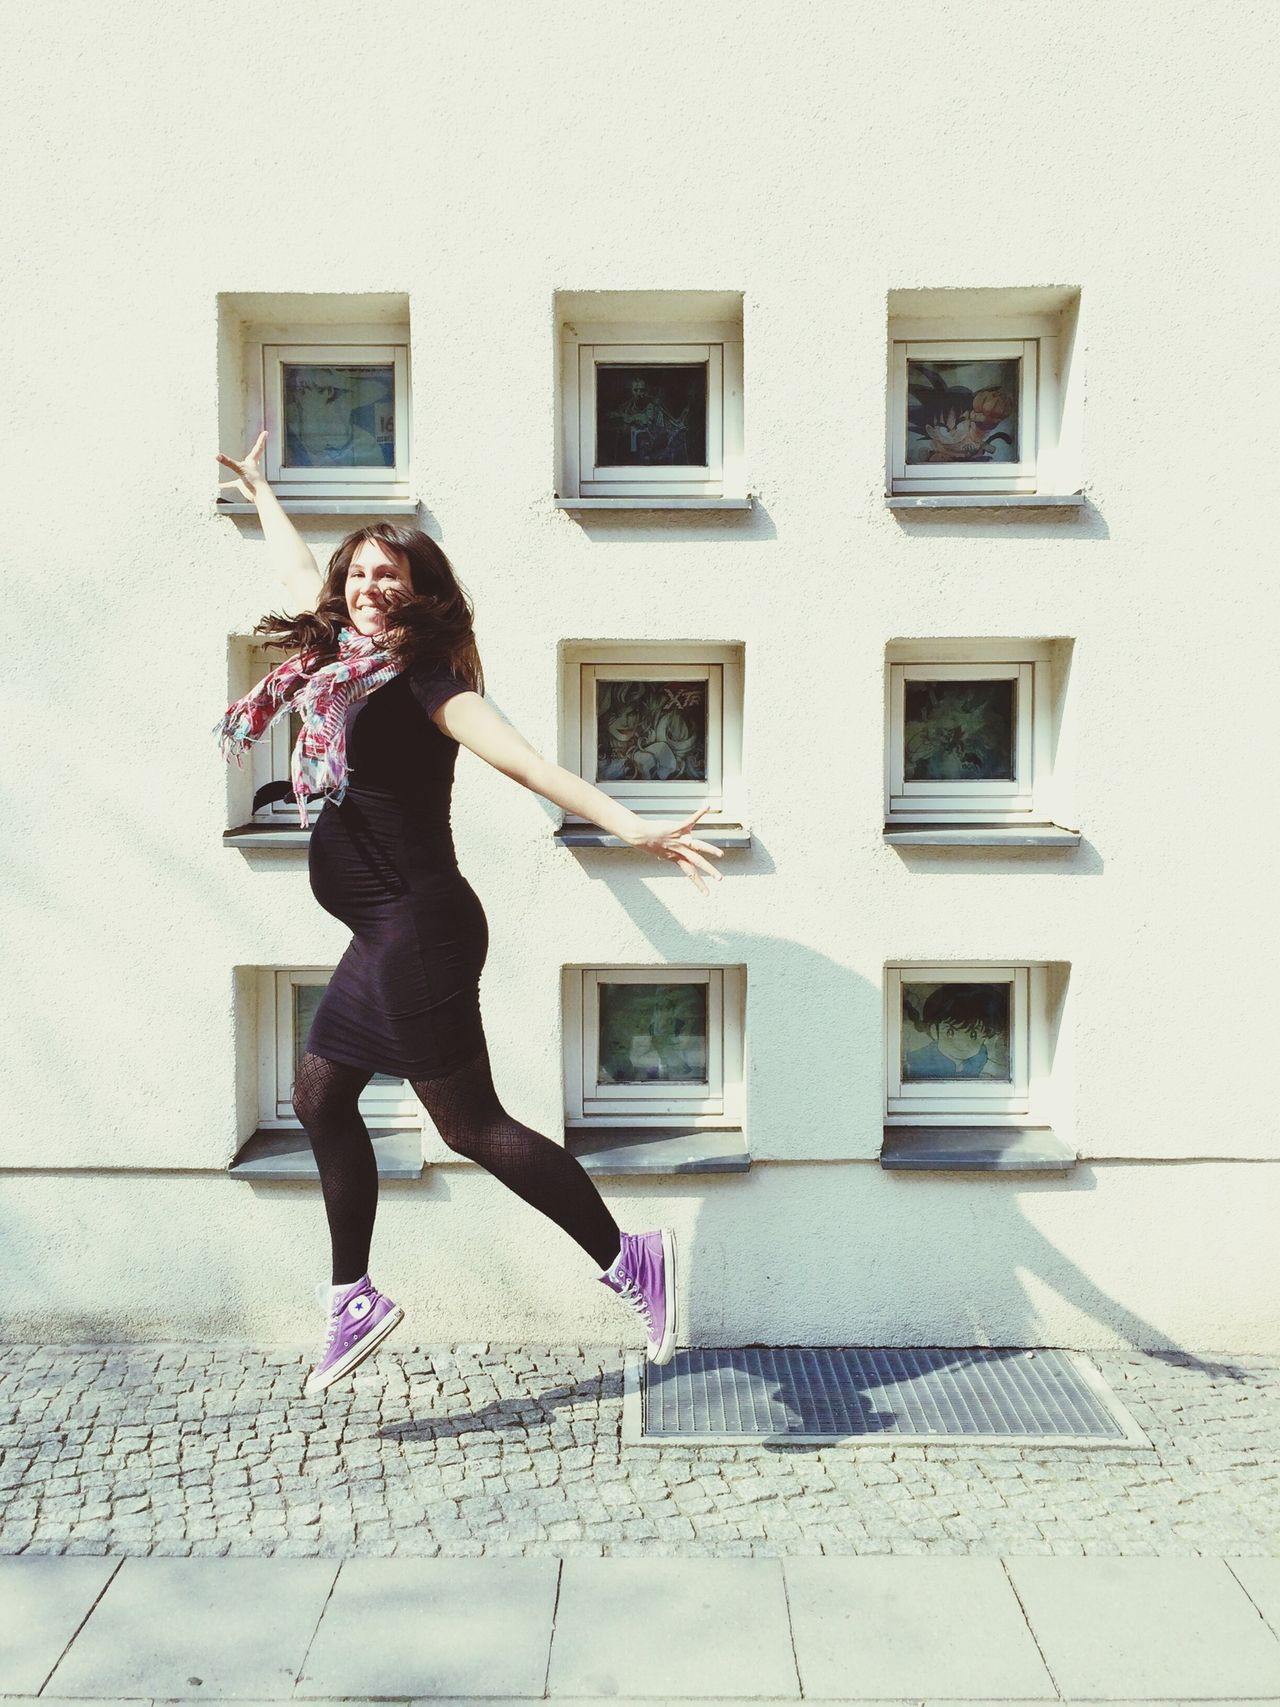 Portrait of pregnant woman jumping on street